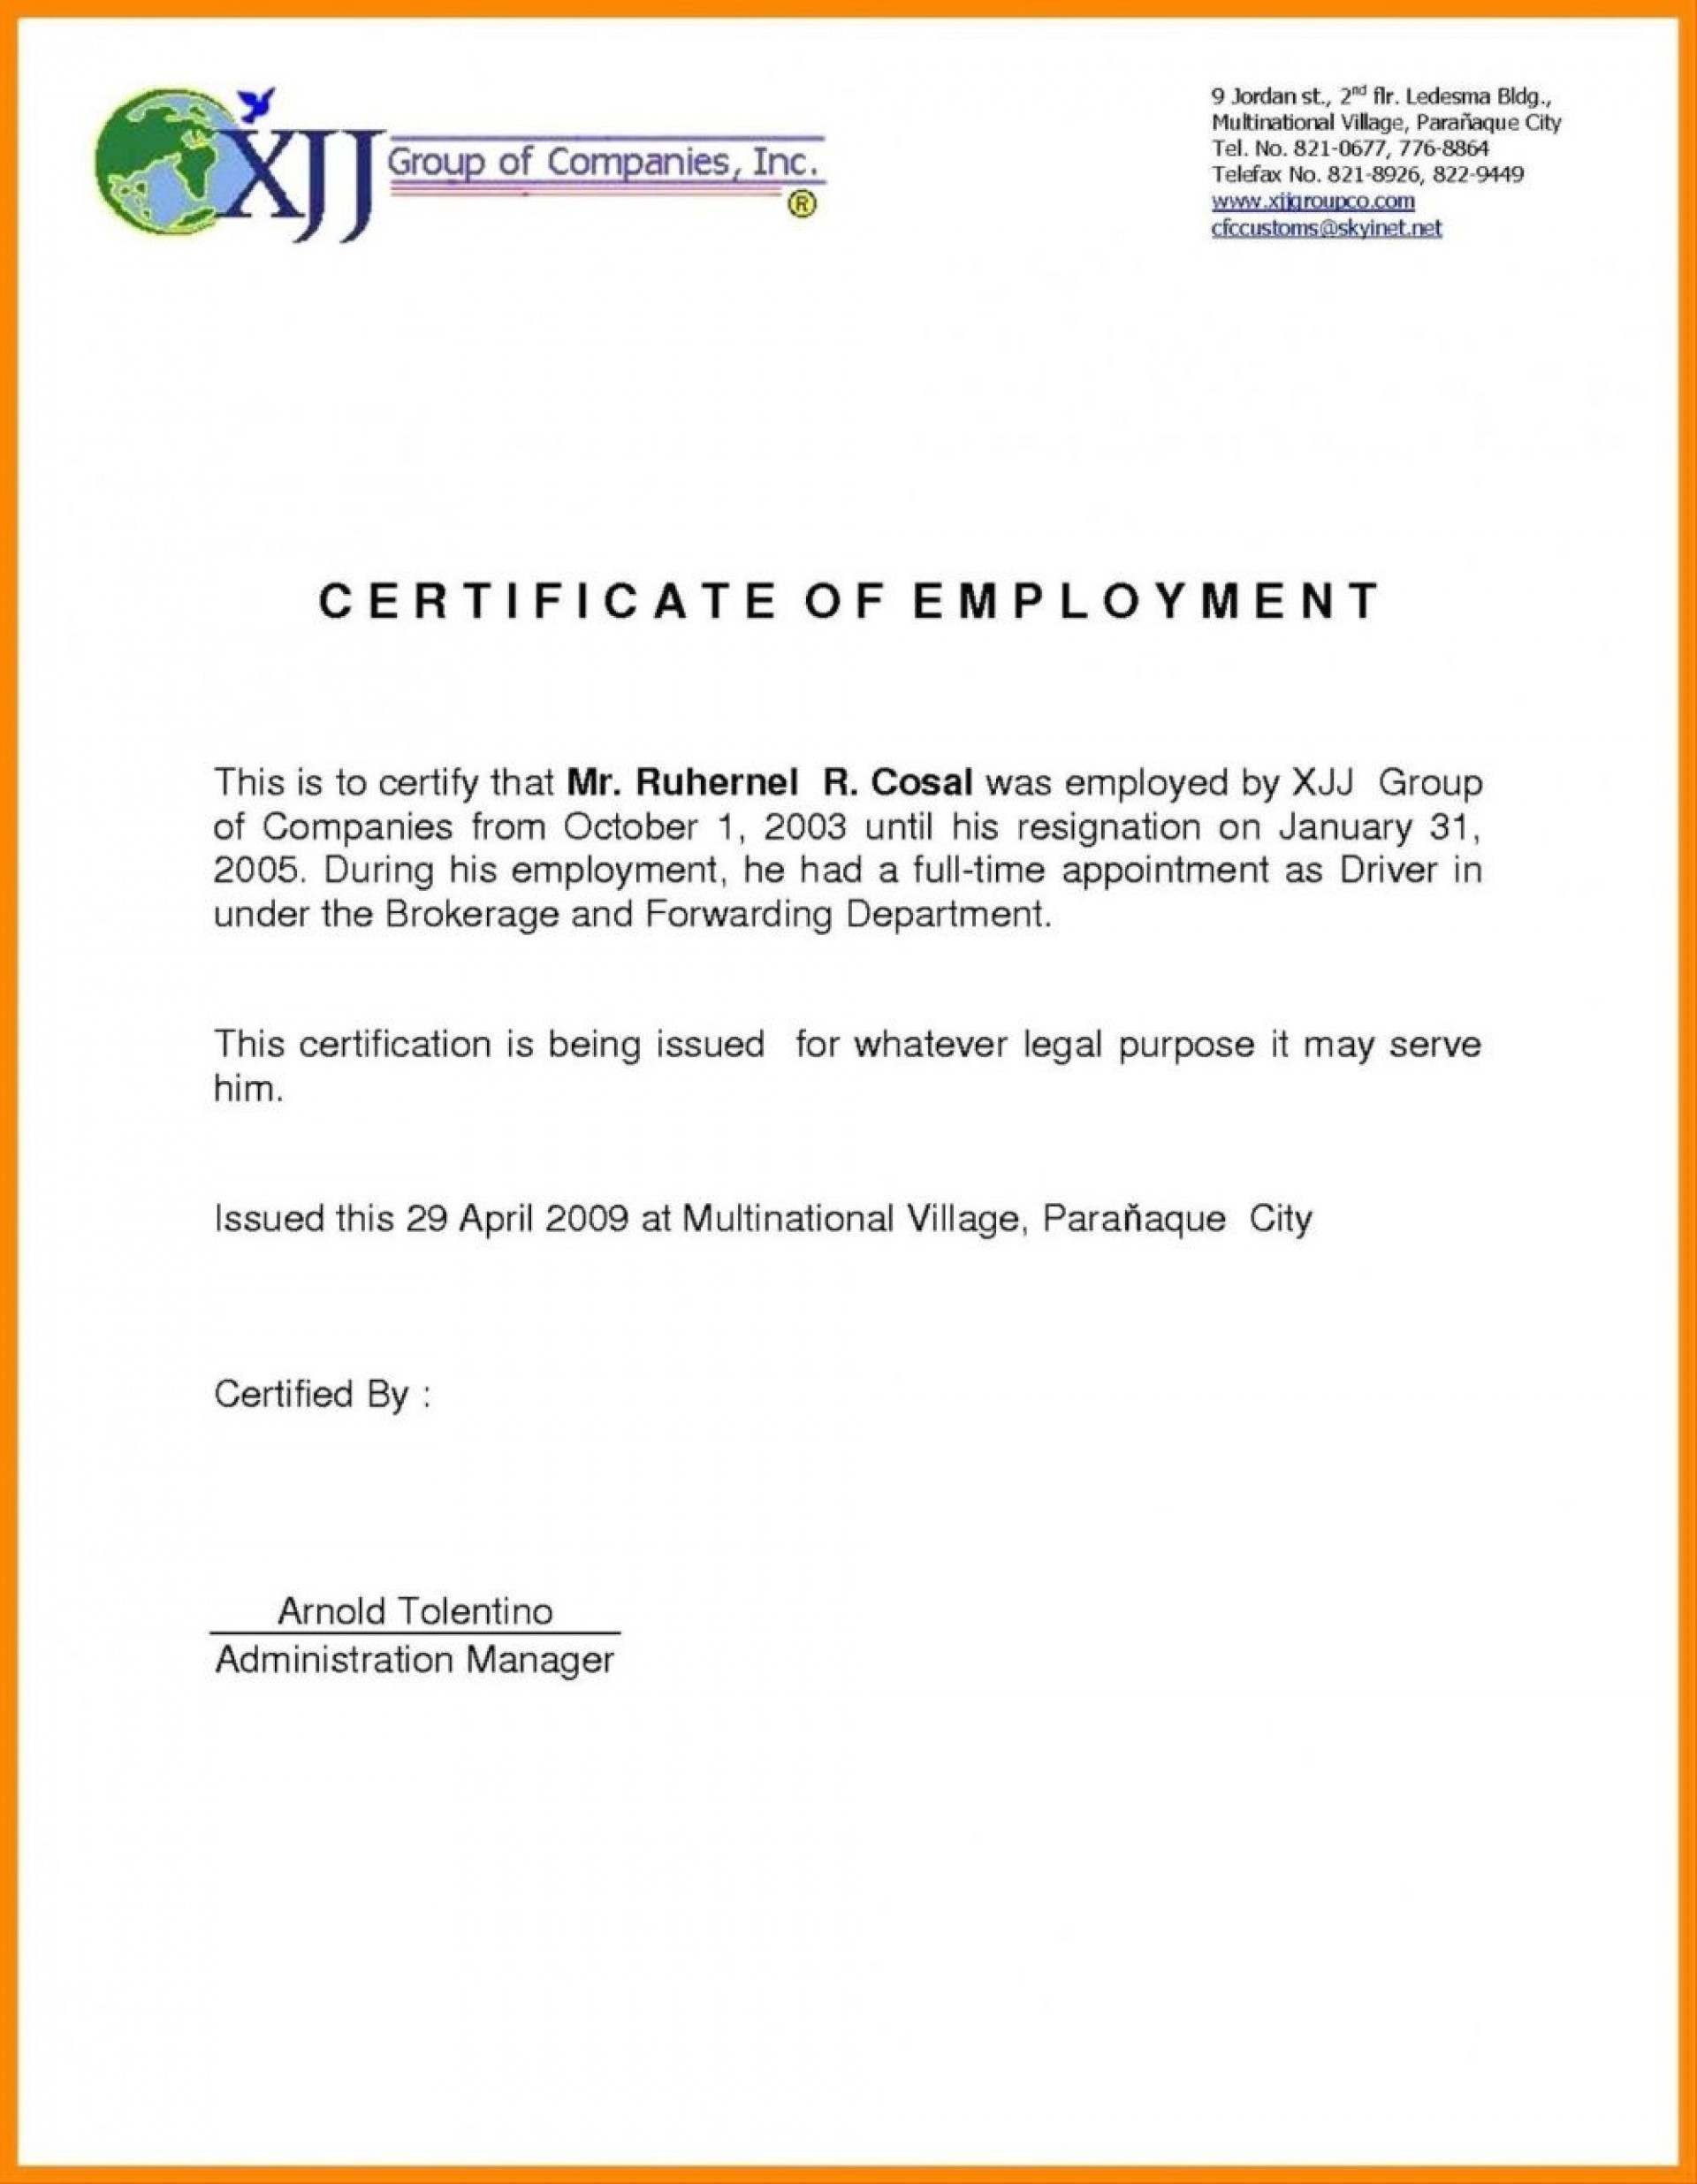 002 Wonderful Certificate Of Employment Template Design  Nz Sample Word Format Free1920